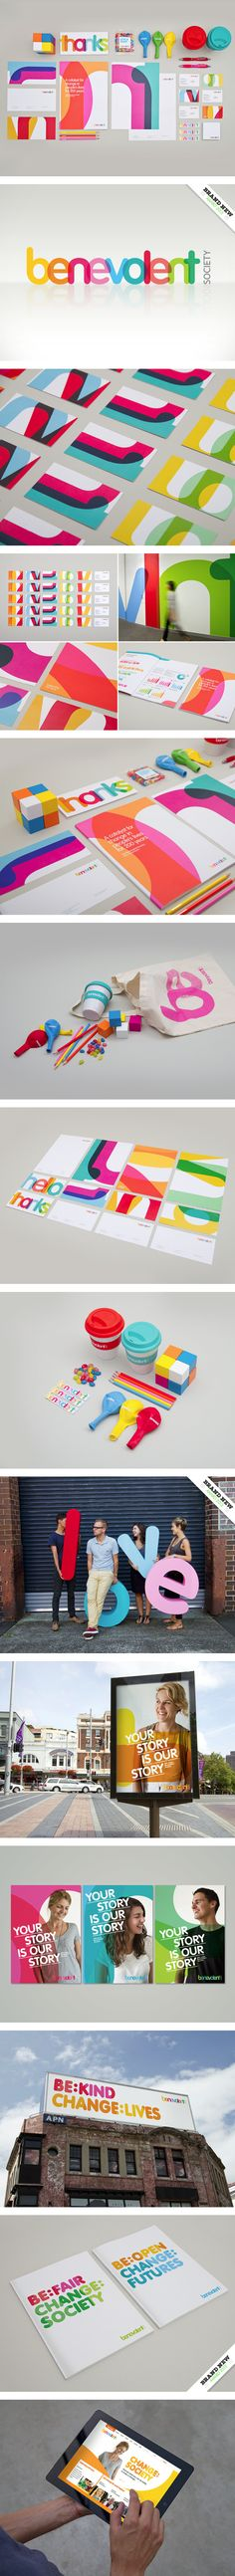 Benevolent Society on Behance